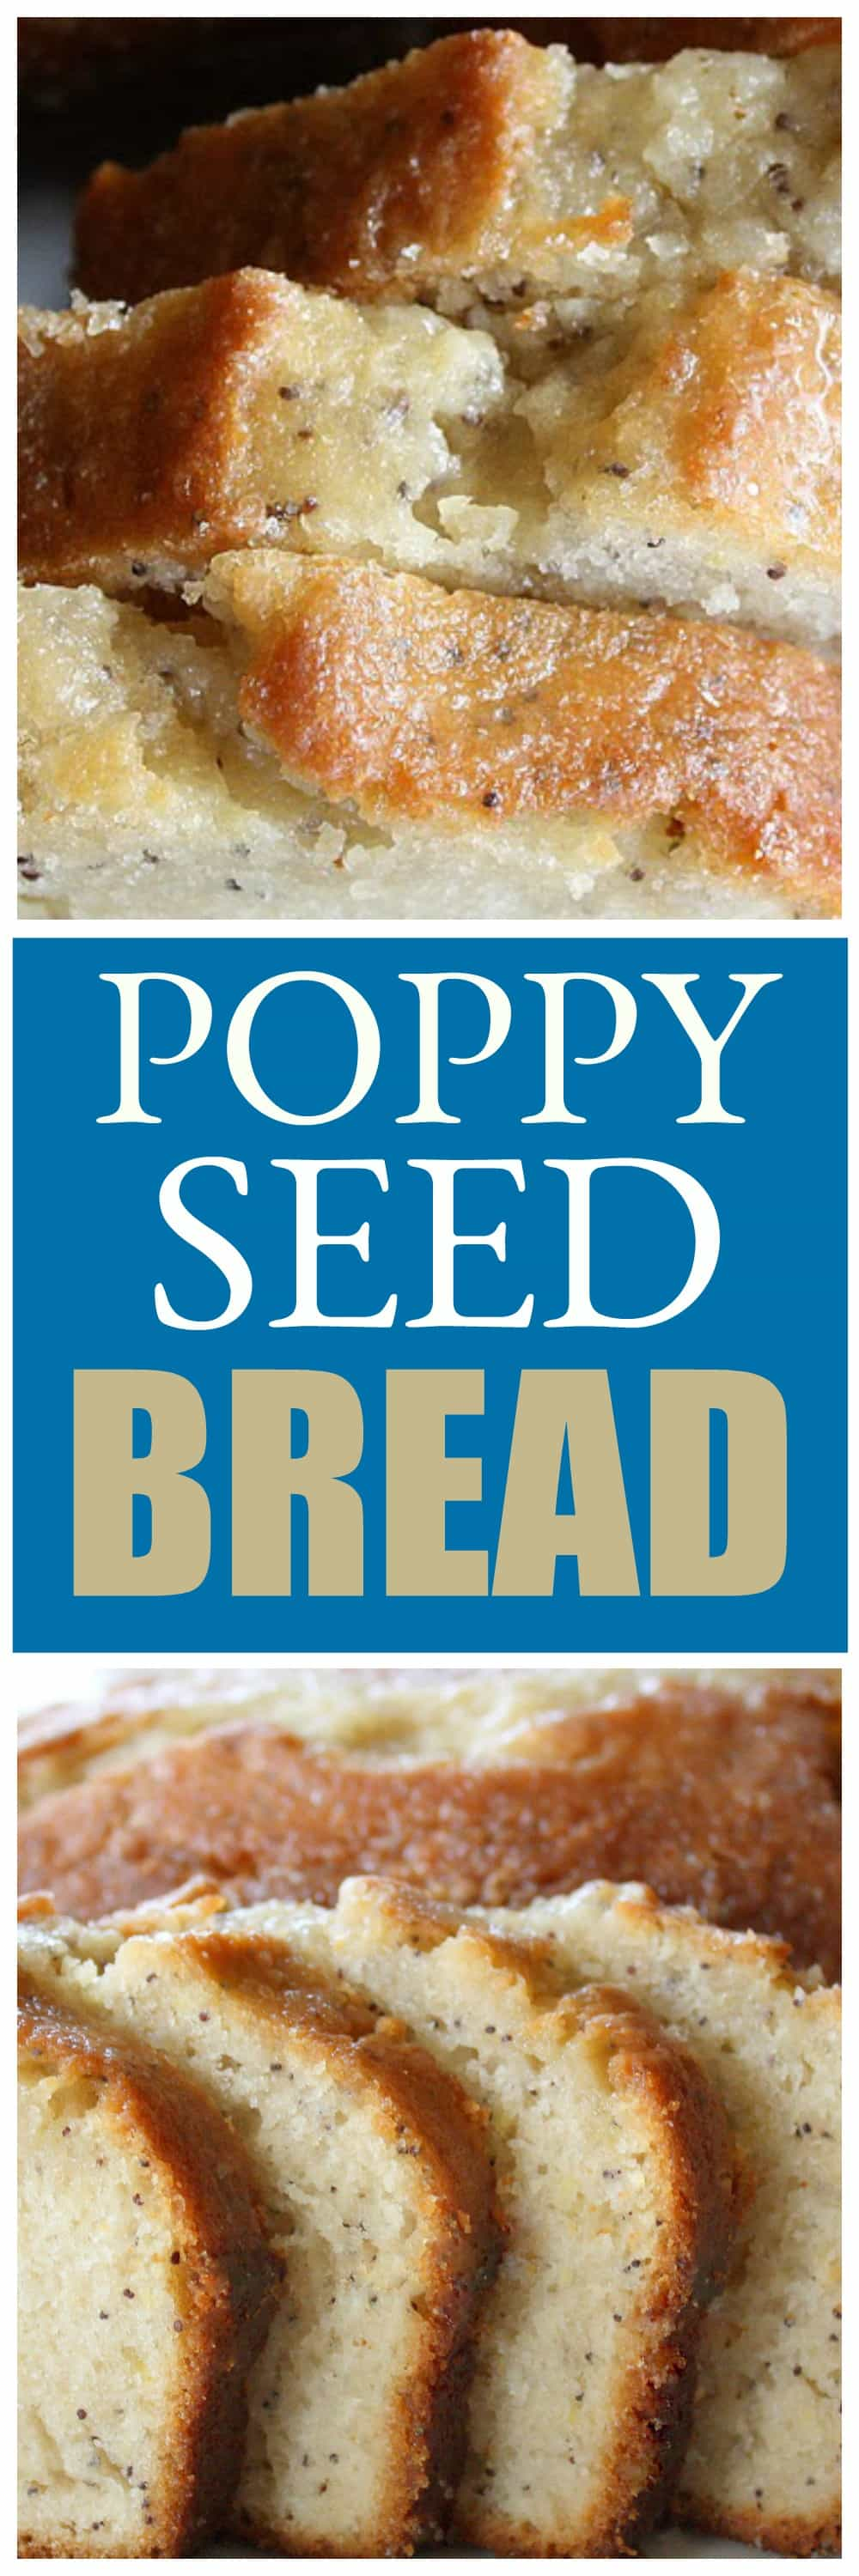 Almond Poppyseed Bread with an almond citrus glaze - a family recipe that is simply the best. Moist, buttery, poppy seed bread with a lemon, orange glaze. the-girl-who-ate-everything.com